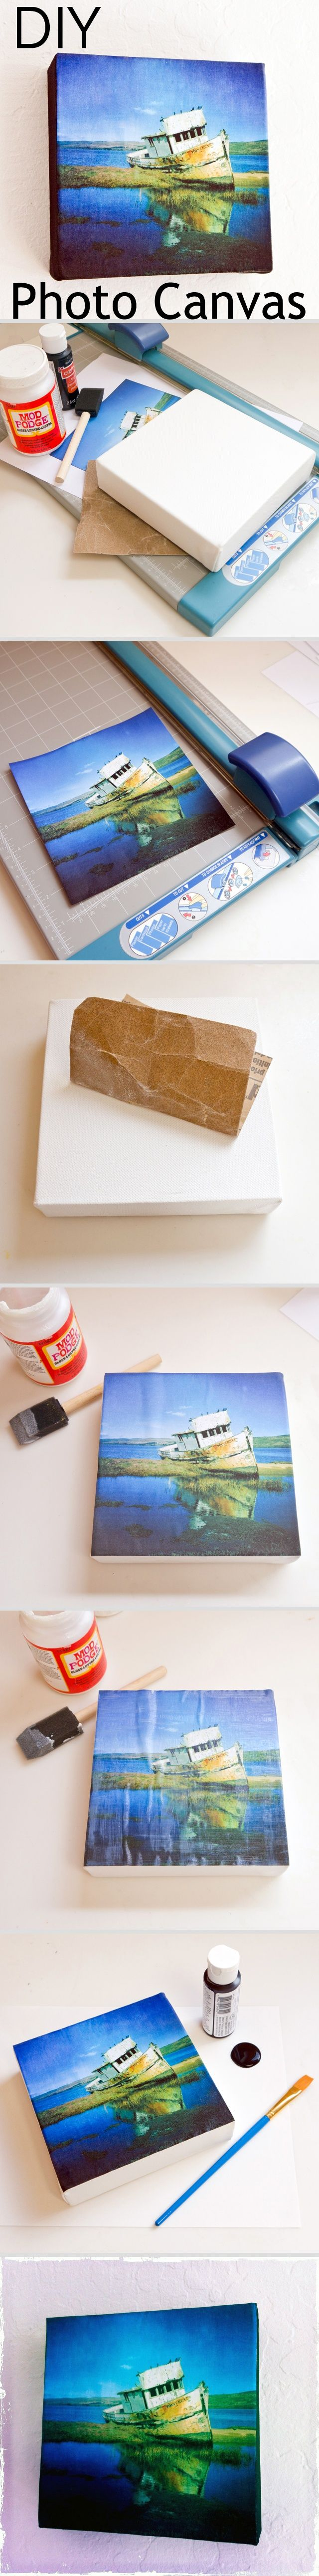 DIY Square Photo Canvas